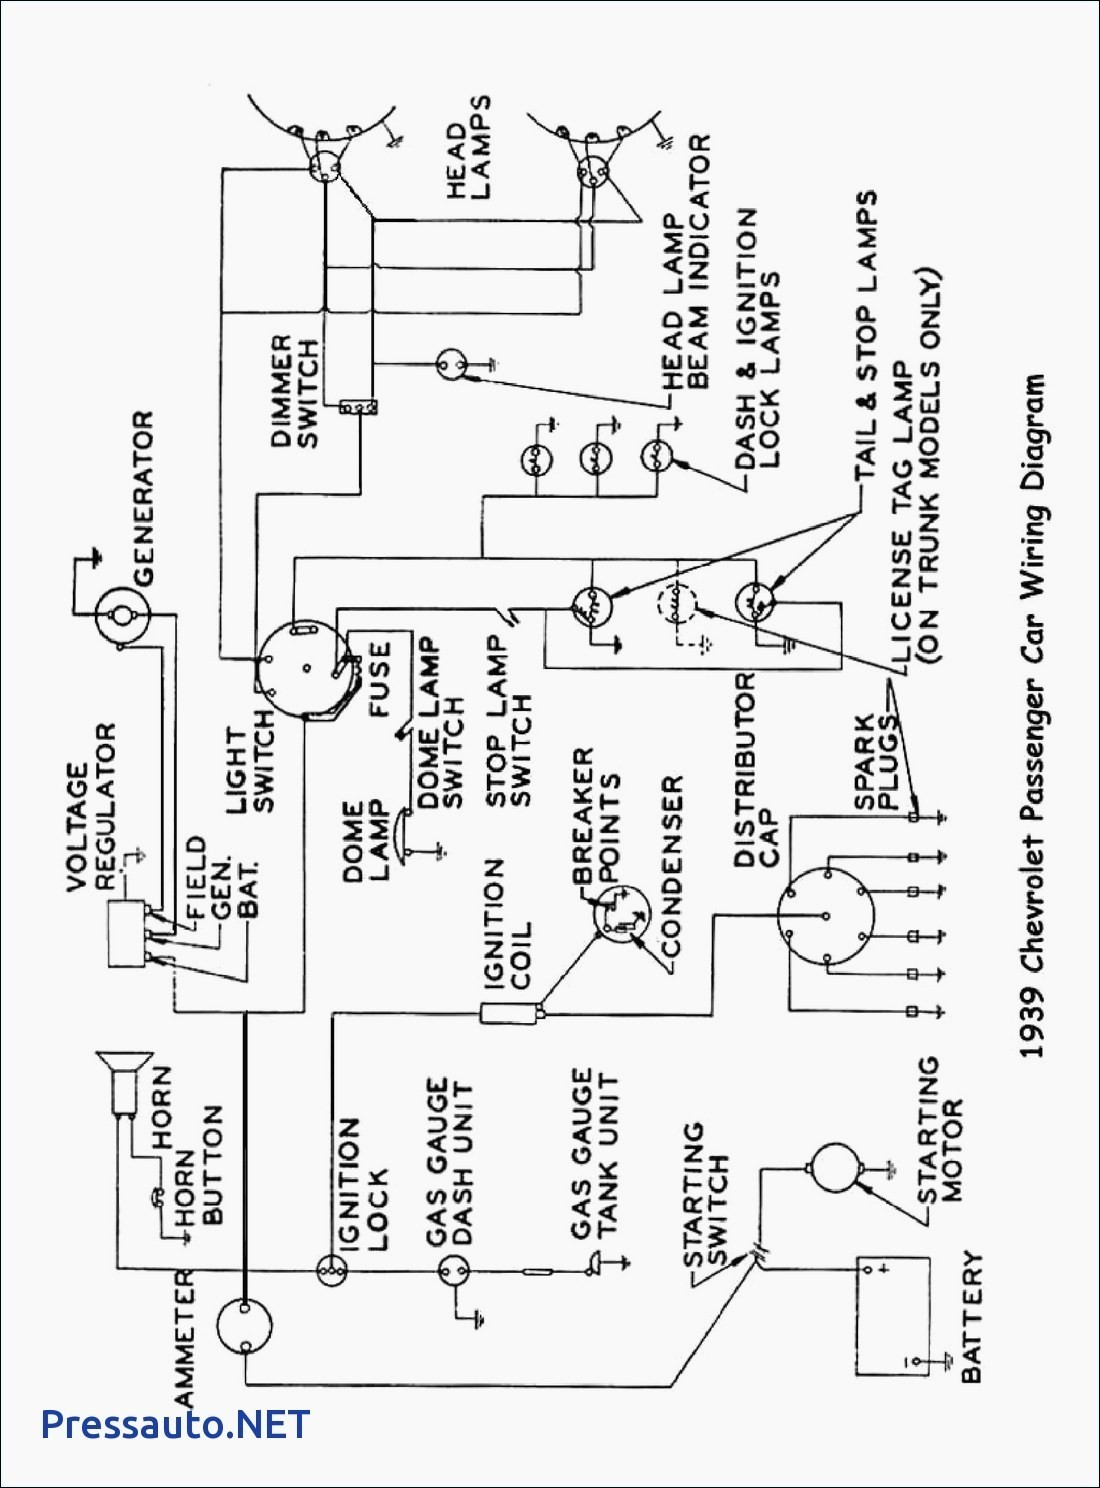 Diagram John Deere 4400 Fuse Box Diagram Full Version Hd Quality Box Diagram Diagramhondap Gisbertovalori It